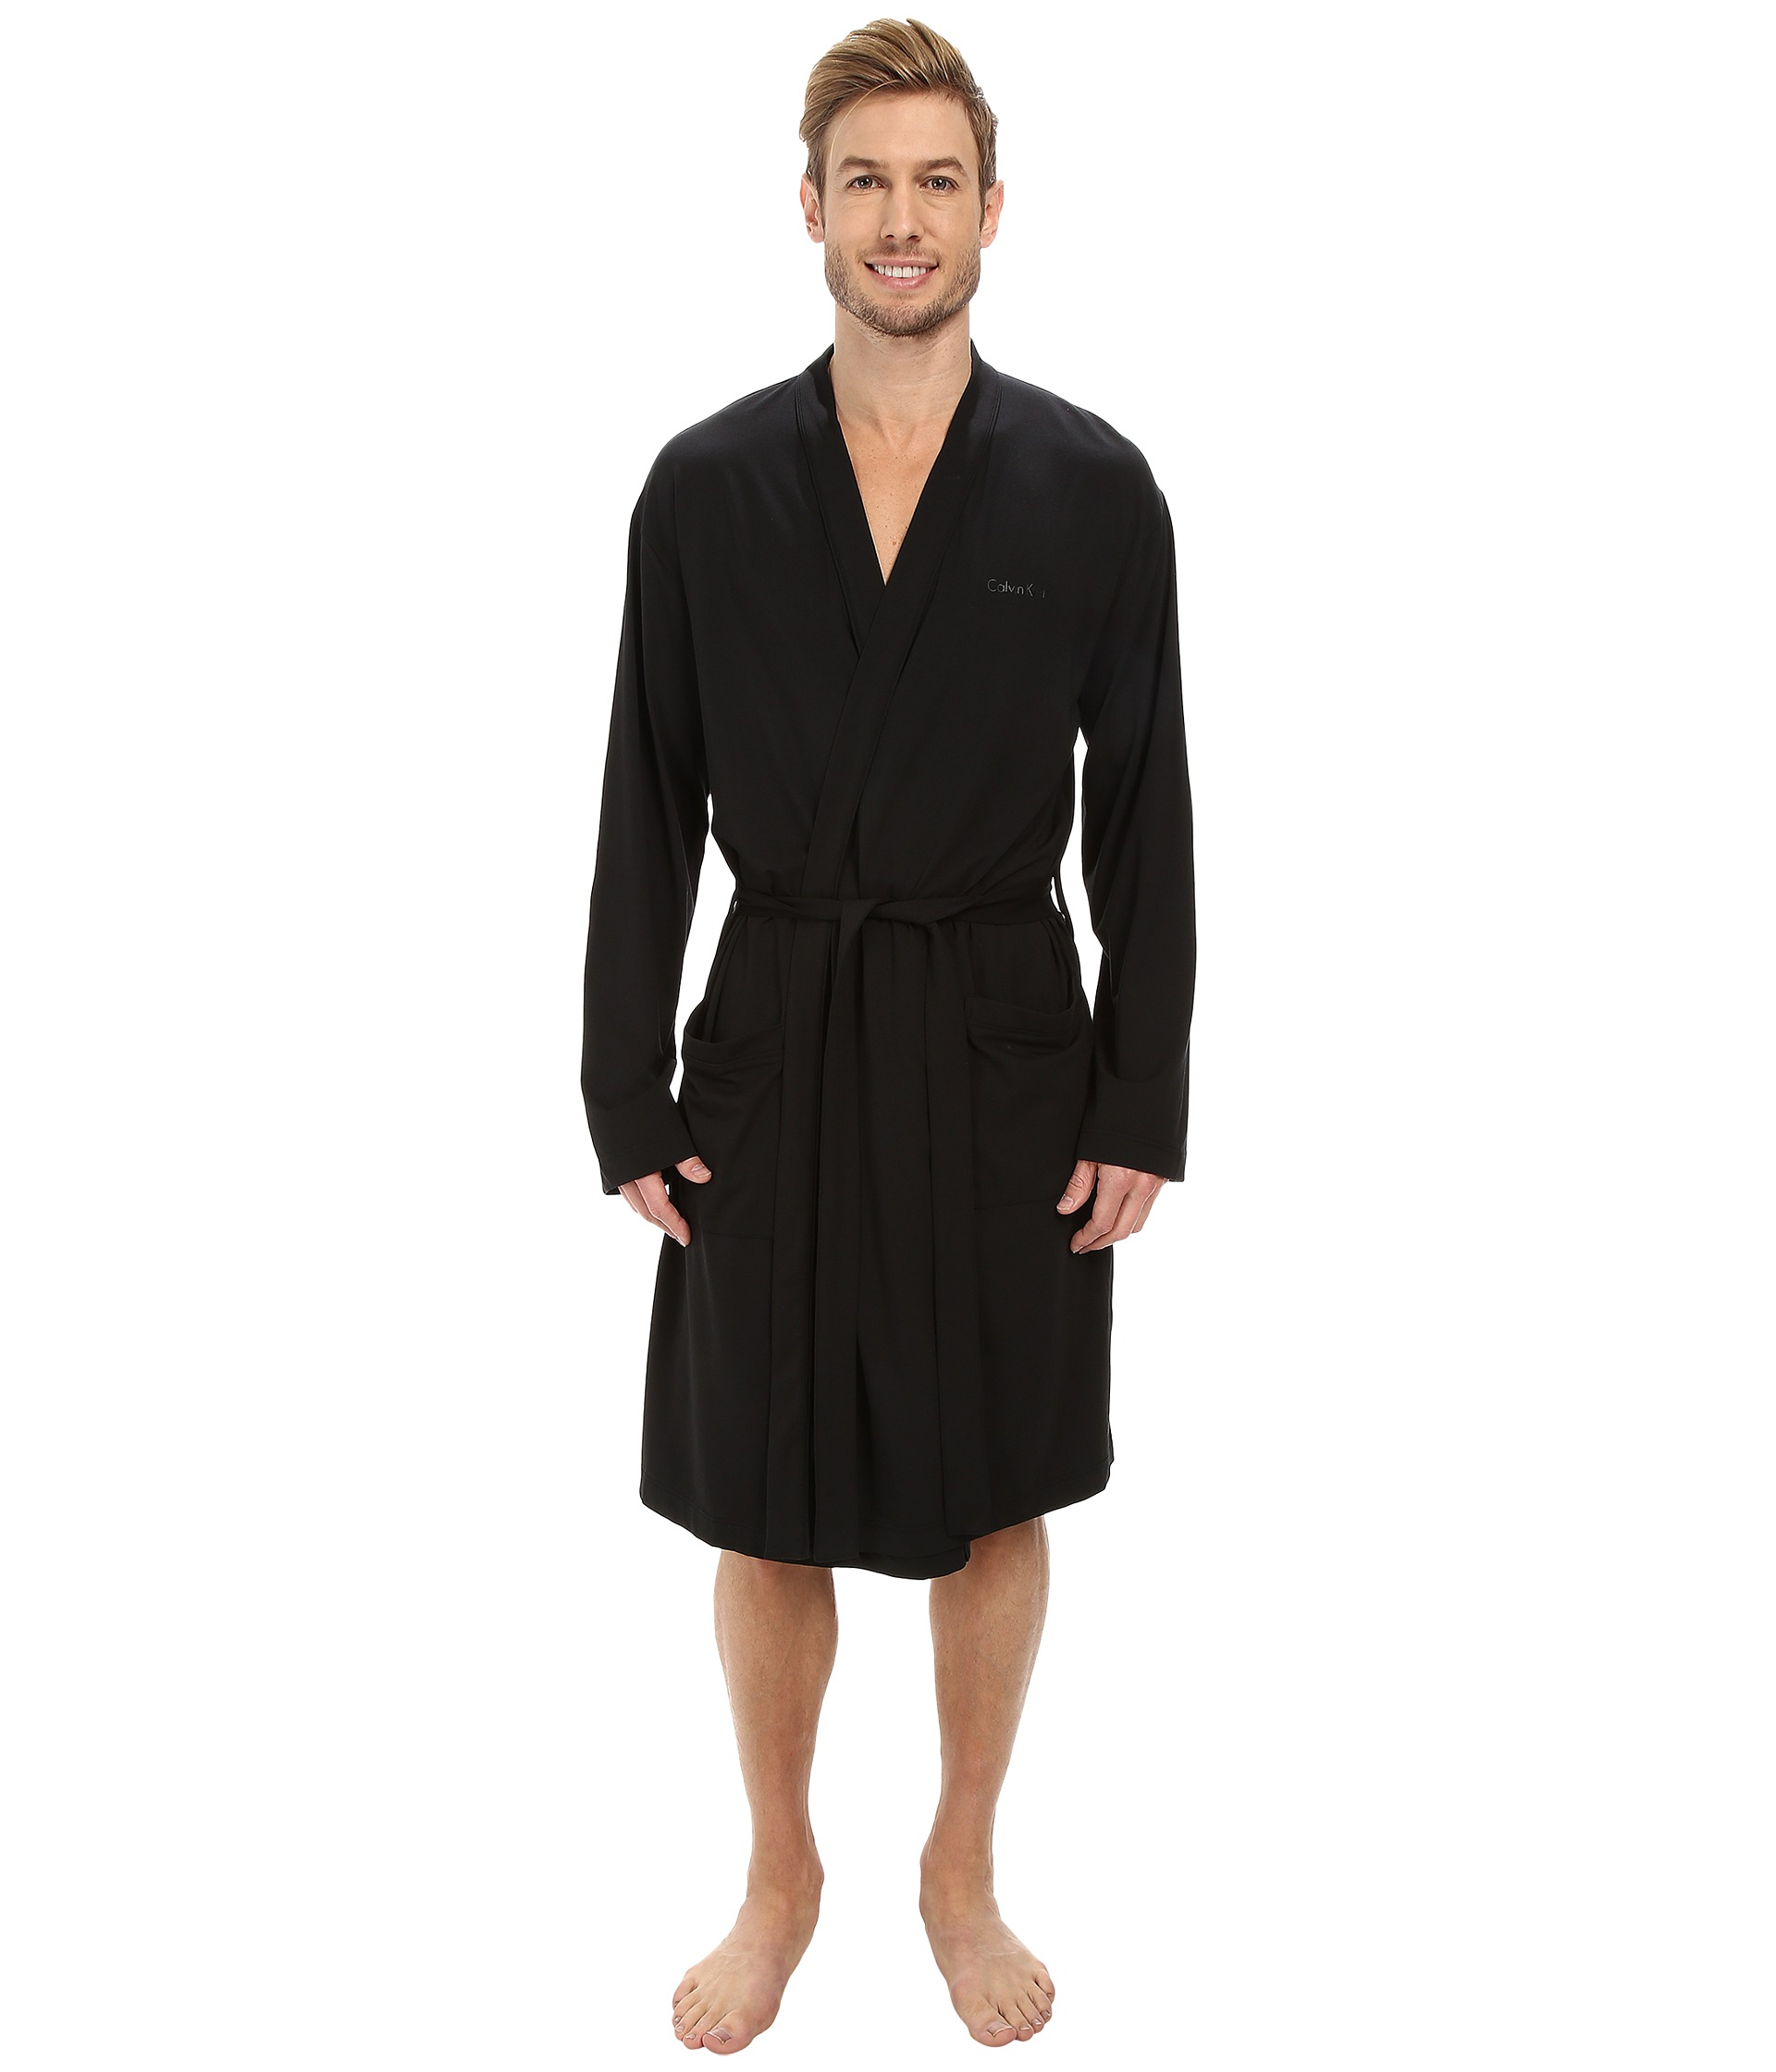 Lyst - Calvin Klein Cotton Modal Robe in Black 869e66ef0